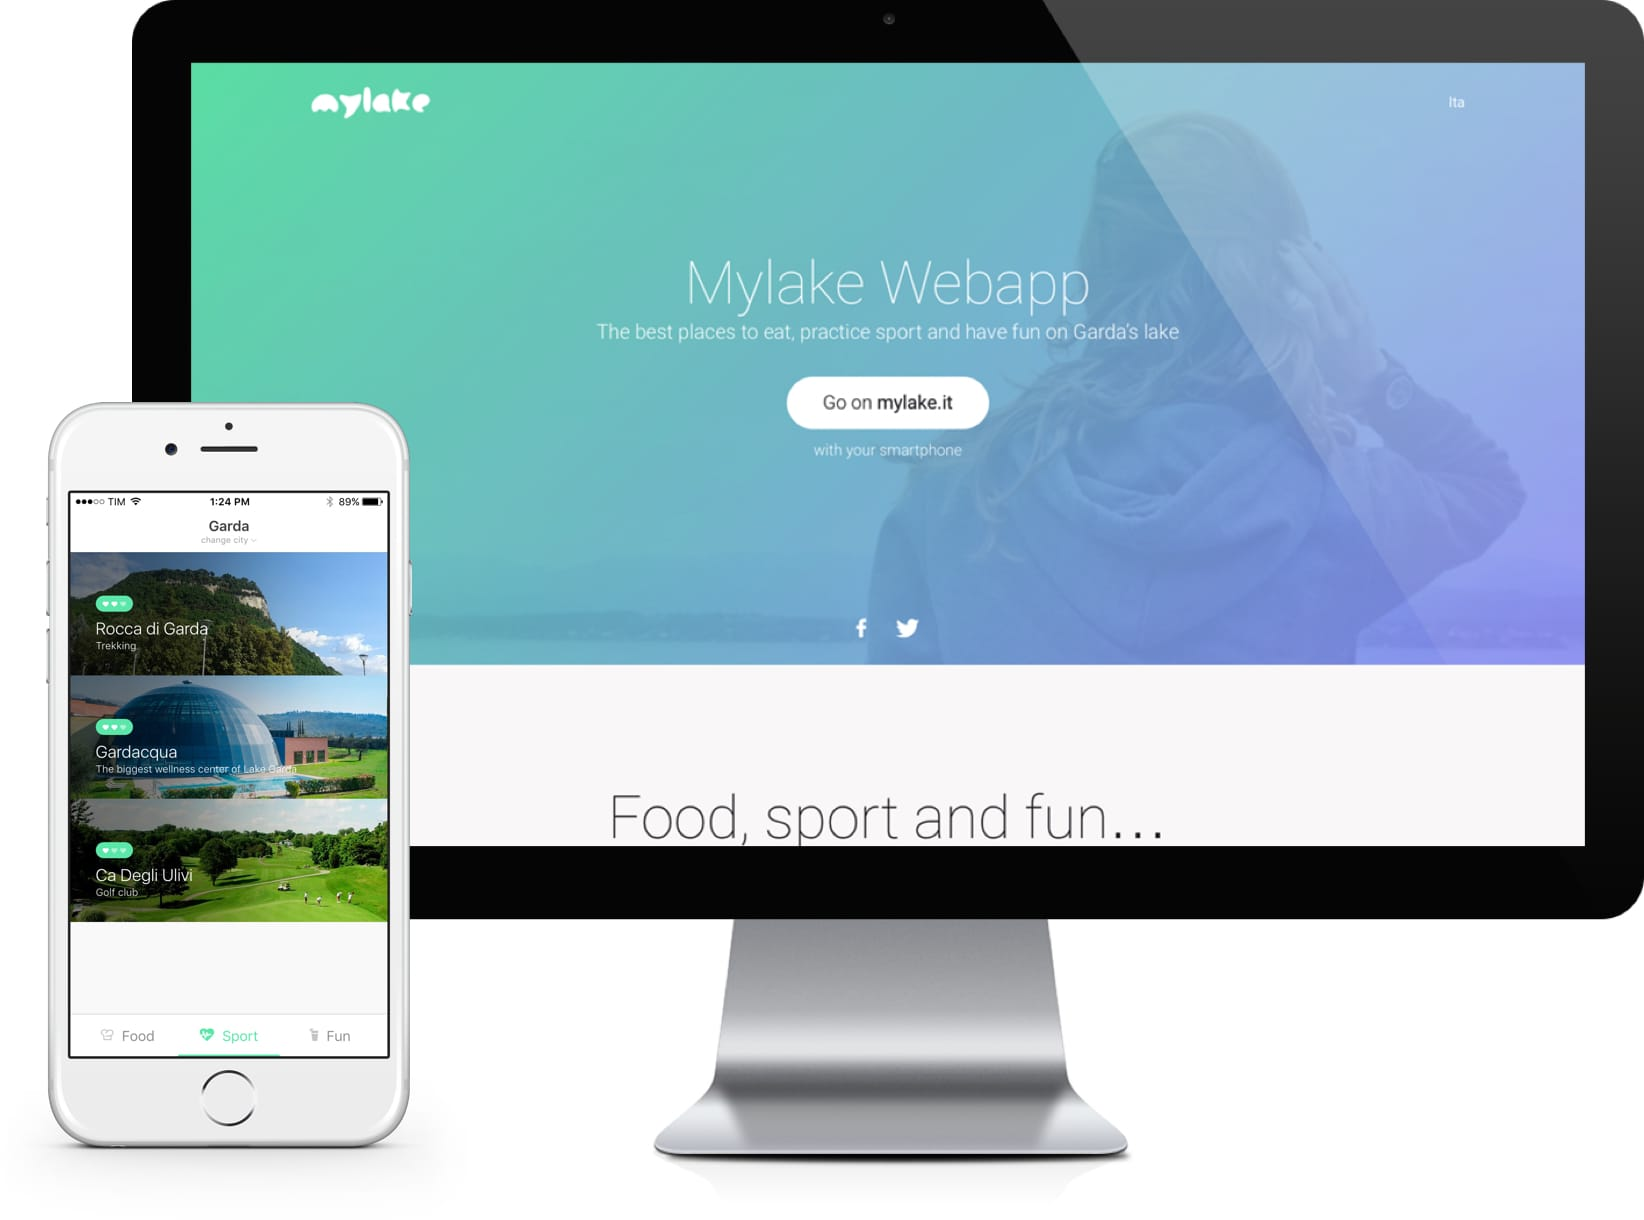 Mylake in iPhone and iMac display